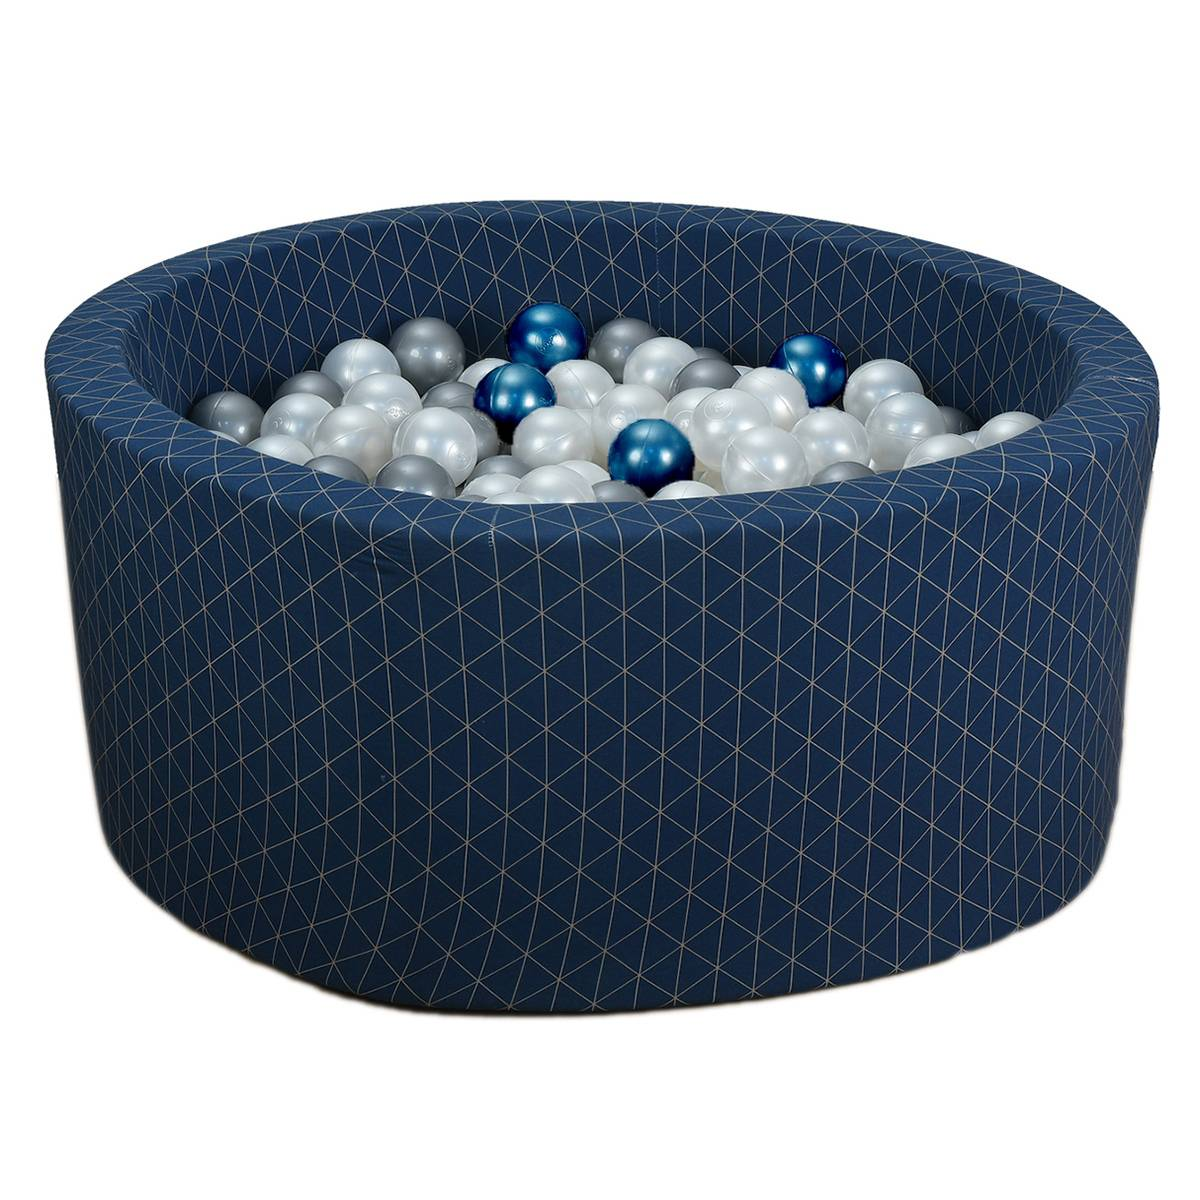 Misioo Piscine à Balles Ronde Graphic Chic & Midnight Blue 90 x 40 cm + 200 Balles